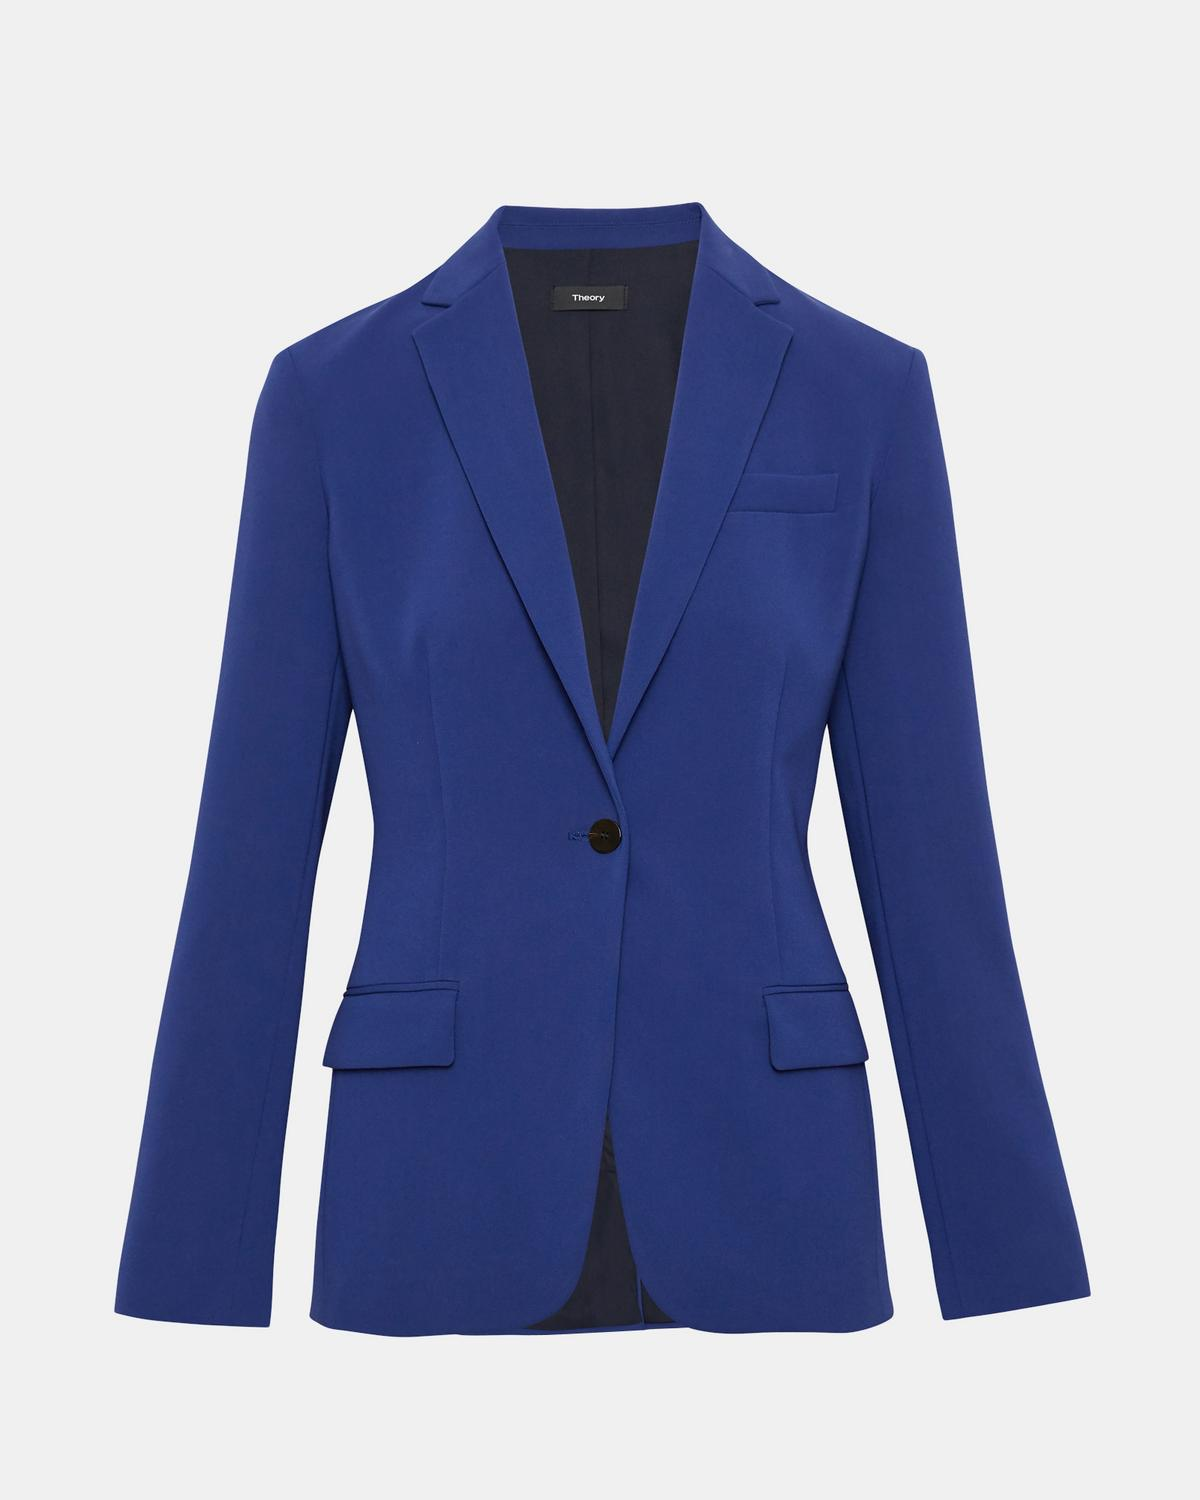 ebf2889a41f49 Classic Crepe Staple Blazer 1 - click to view larger image ...